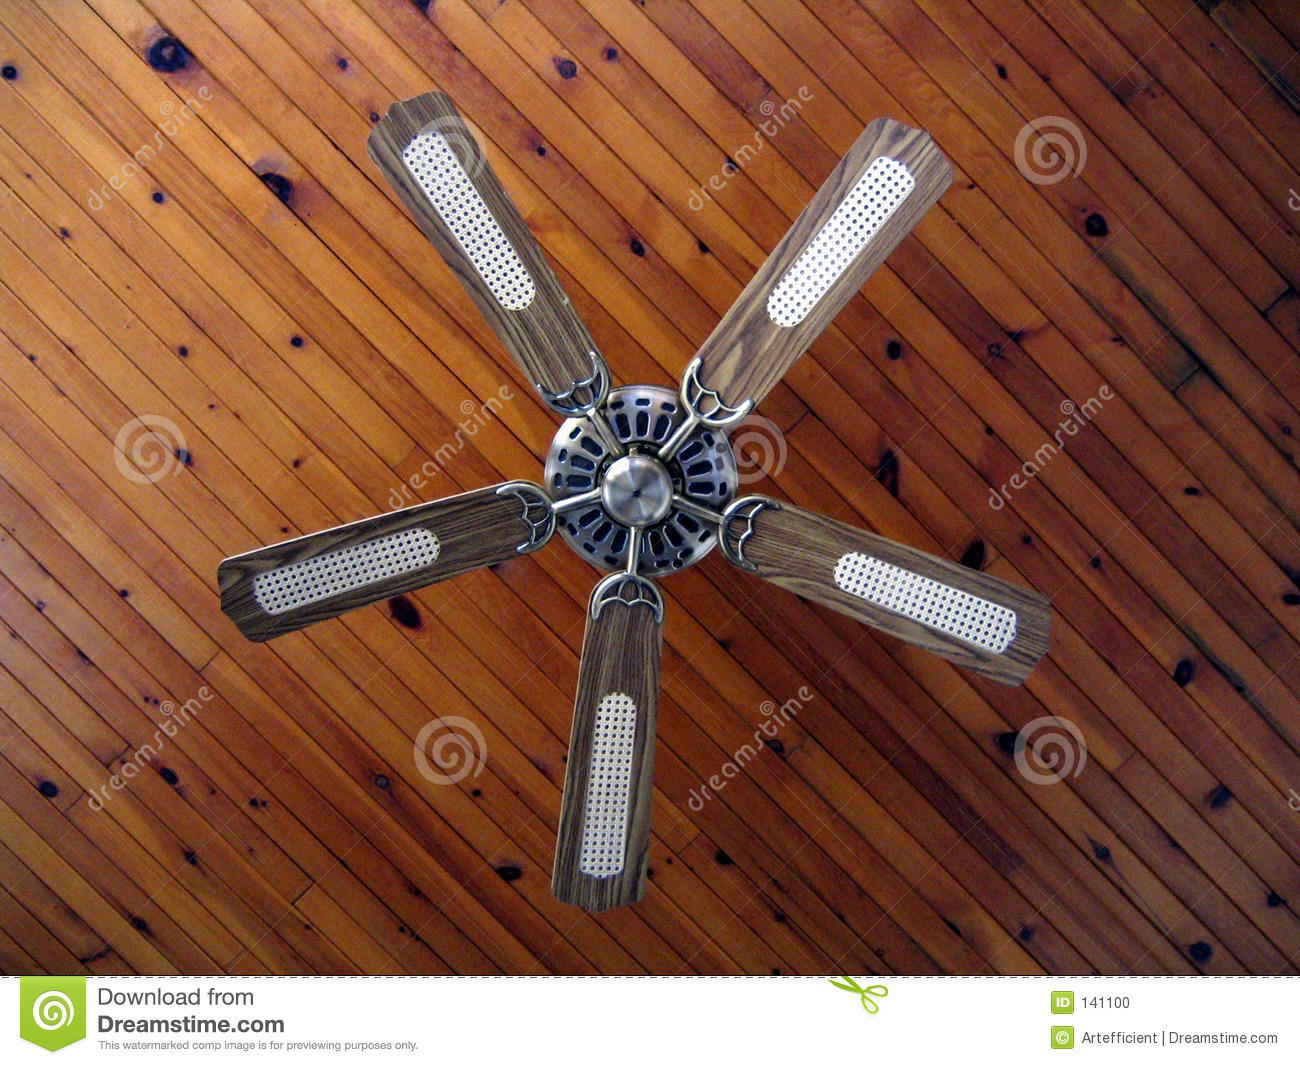 Country house ceiling fan stock photo. Image of ventilation - 141100 for Ceiling Fan Bottom View  56bof